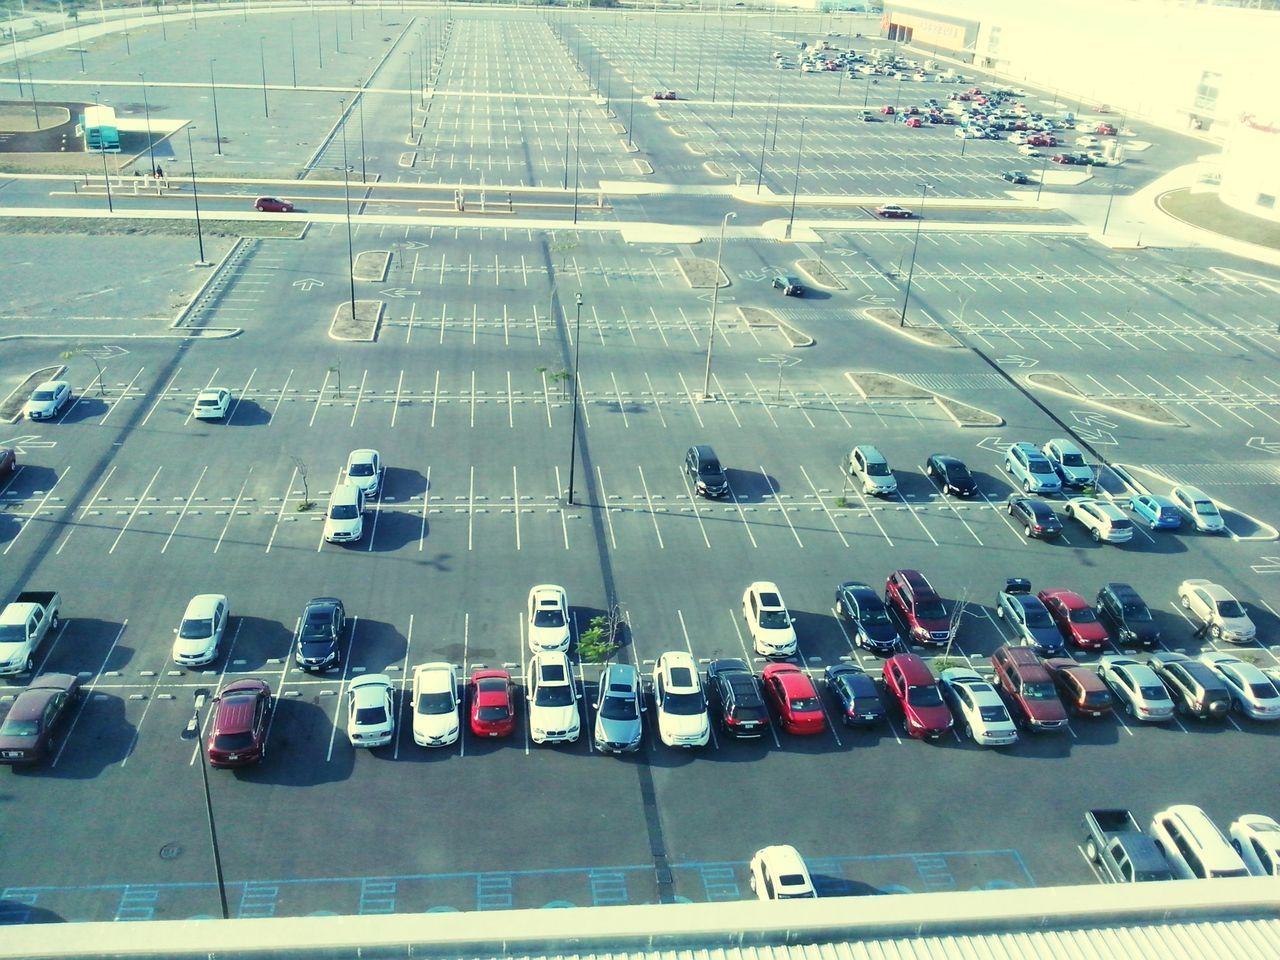 Peaceful And Quiet Empty Parking Lot Urban Landscape Urban Geometry Cars From My Window Sunny Day Taking Photos